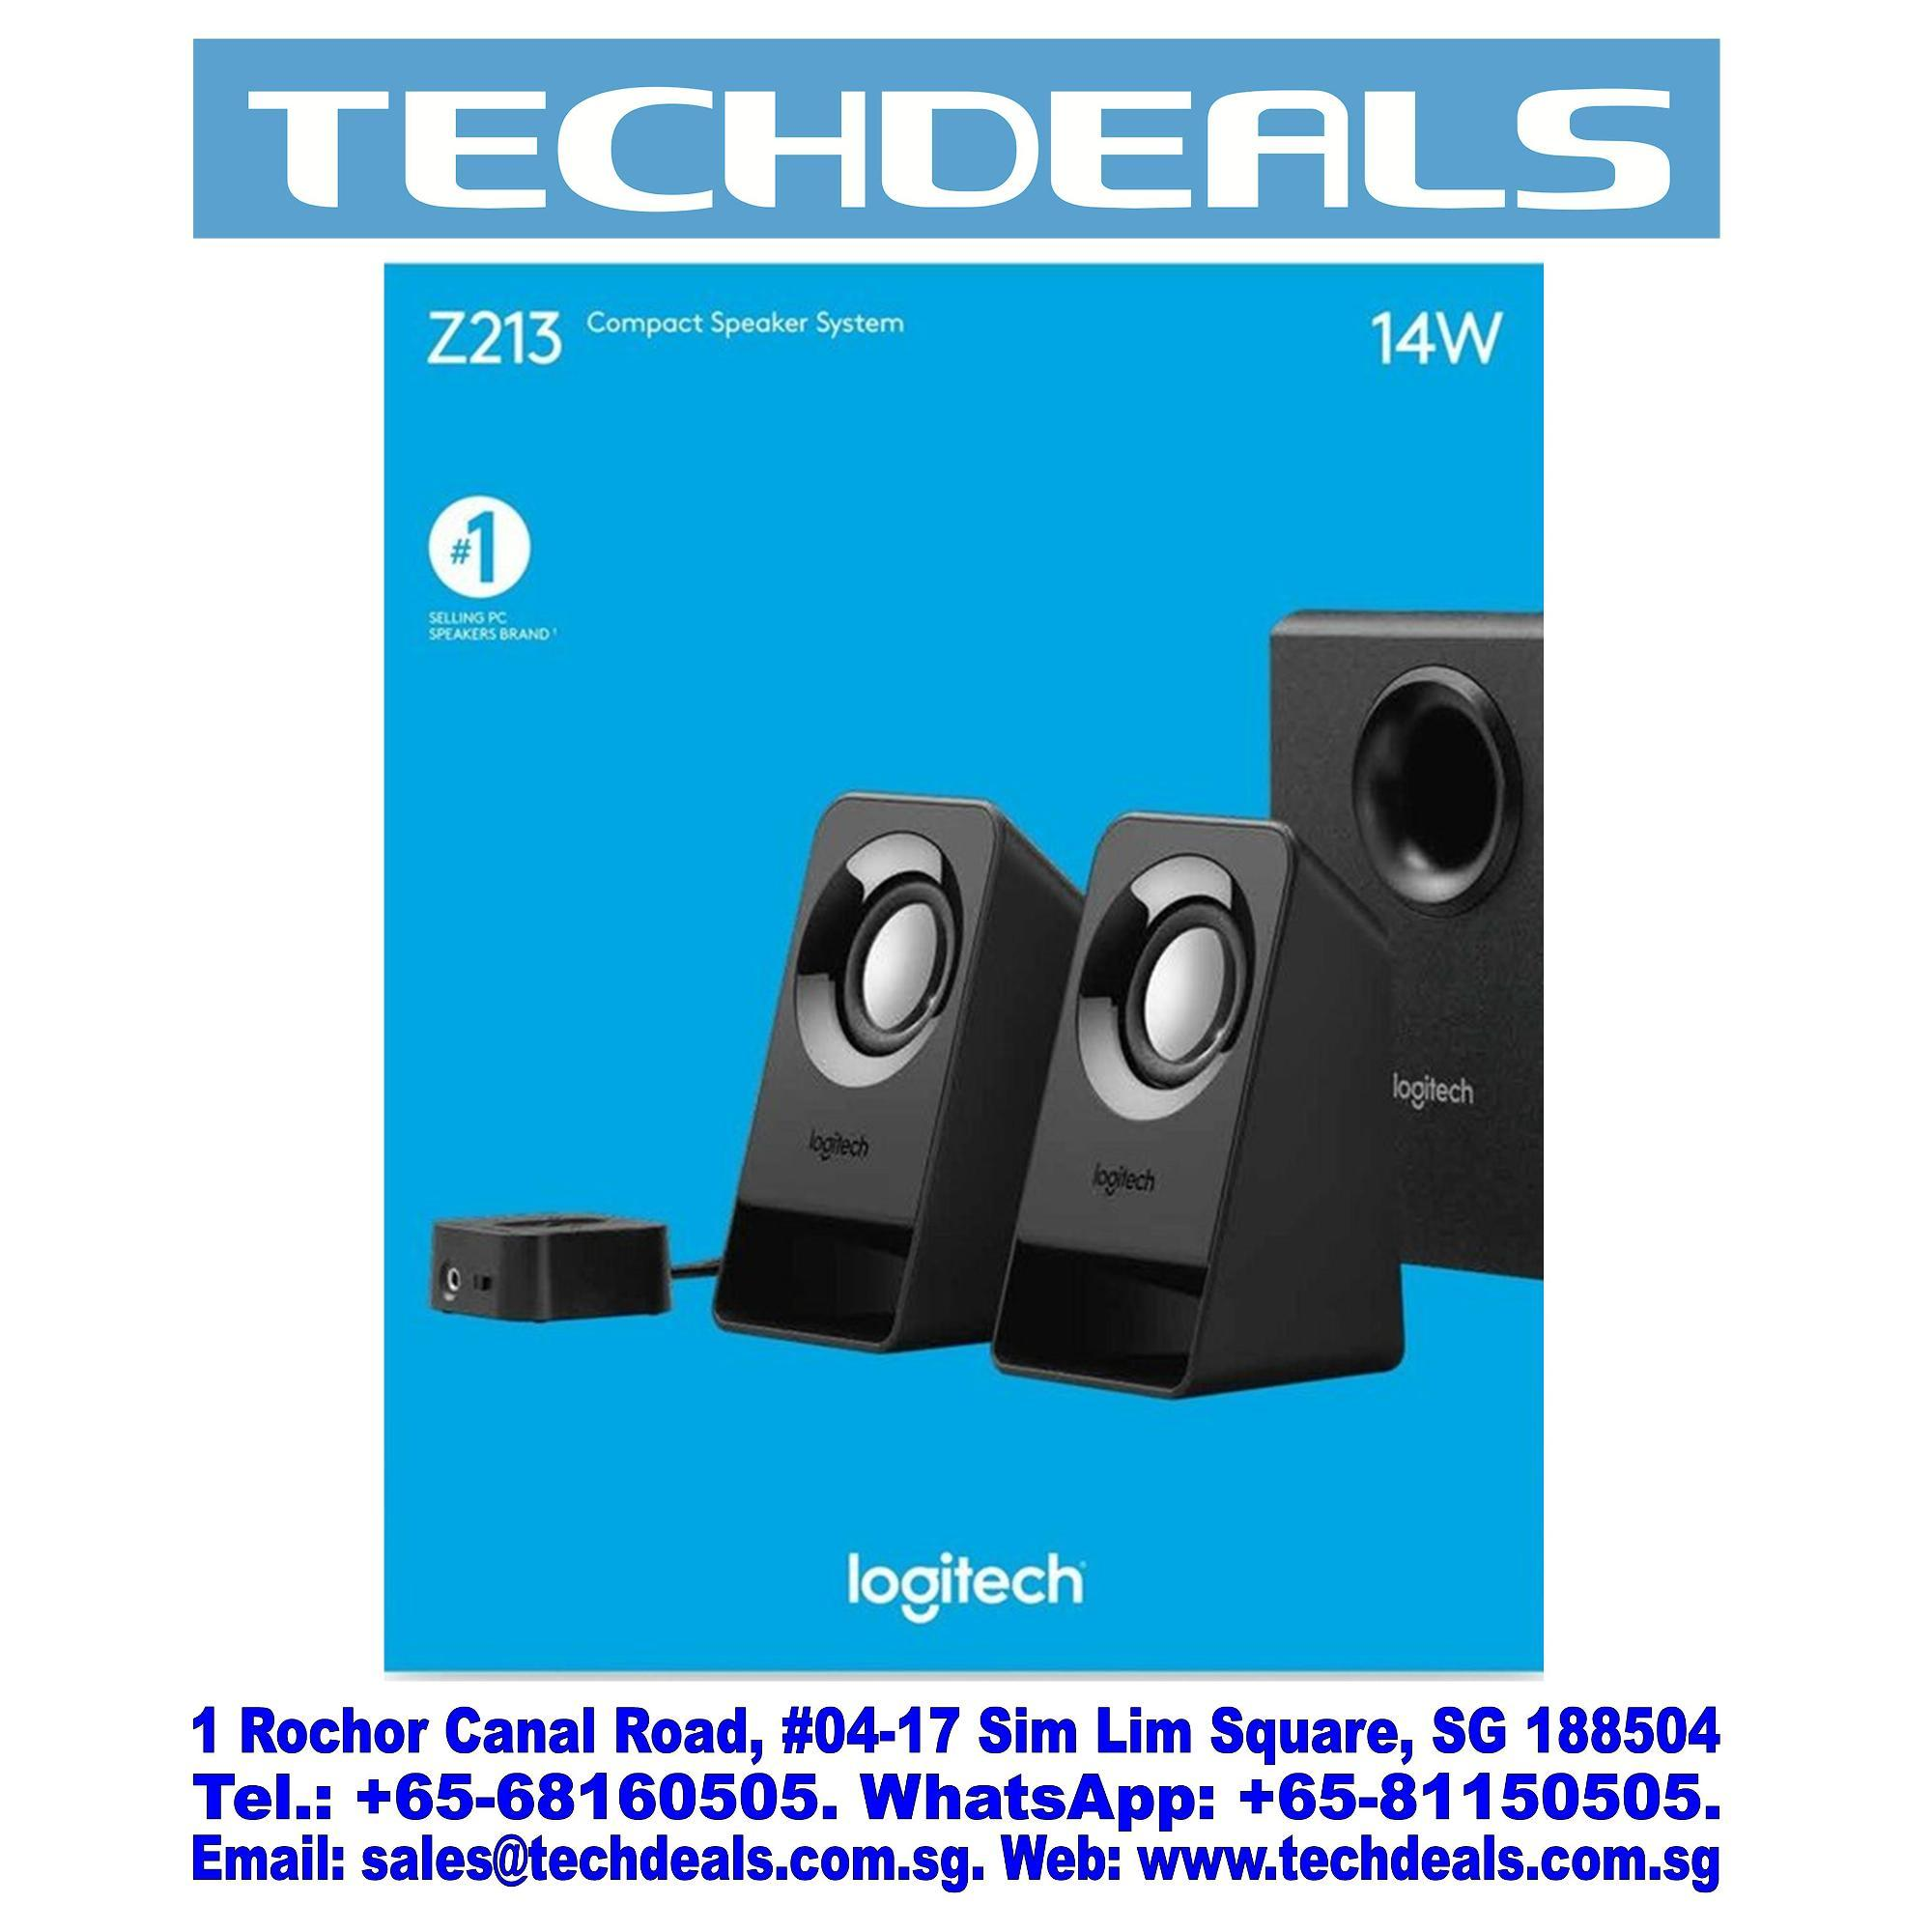 Latest Logitech Computer Speakers Products Enjoy Huge Discounts G560 Lightsync Pc Gaming Speaker Z213 Compact 21 Speakers7w 1y